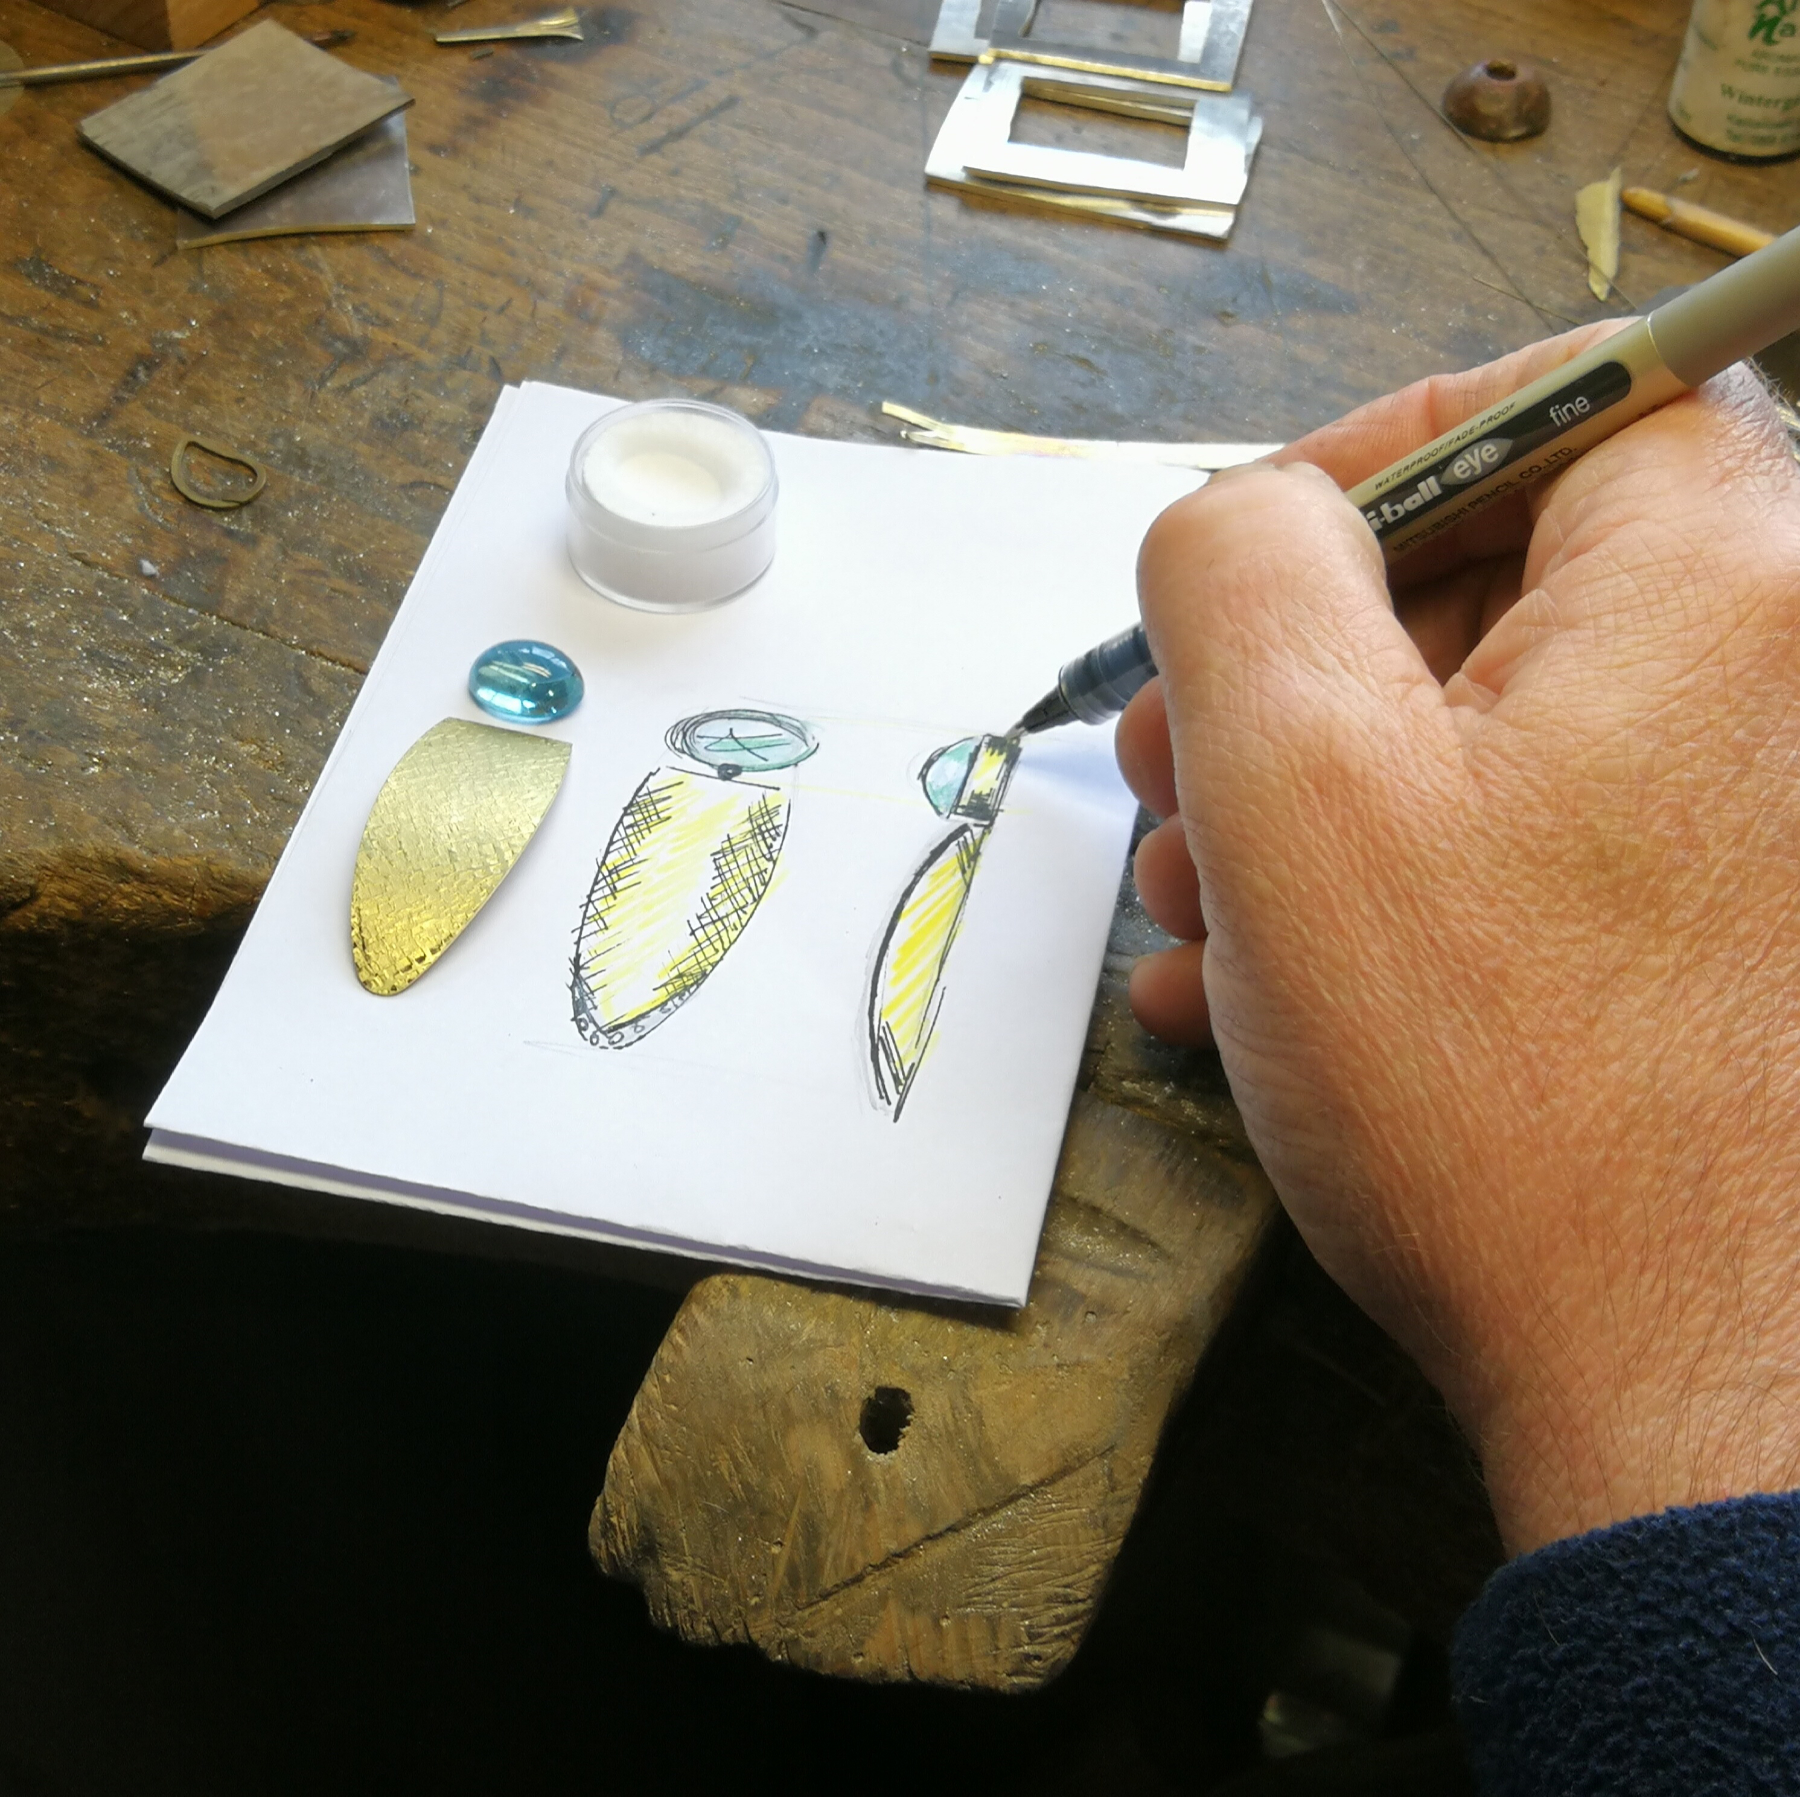 James Mary Kelly, owner of JMK goldsmiths sketching new designs at his workshop in Kilkenny, Ireland